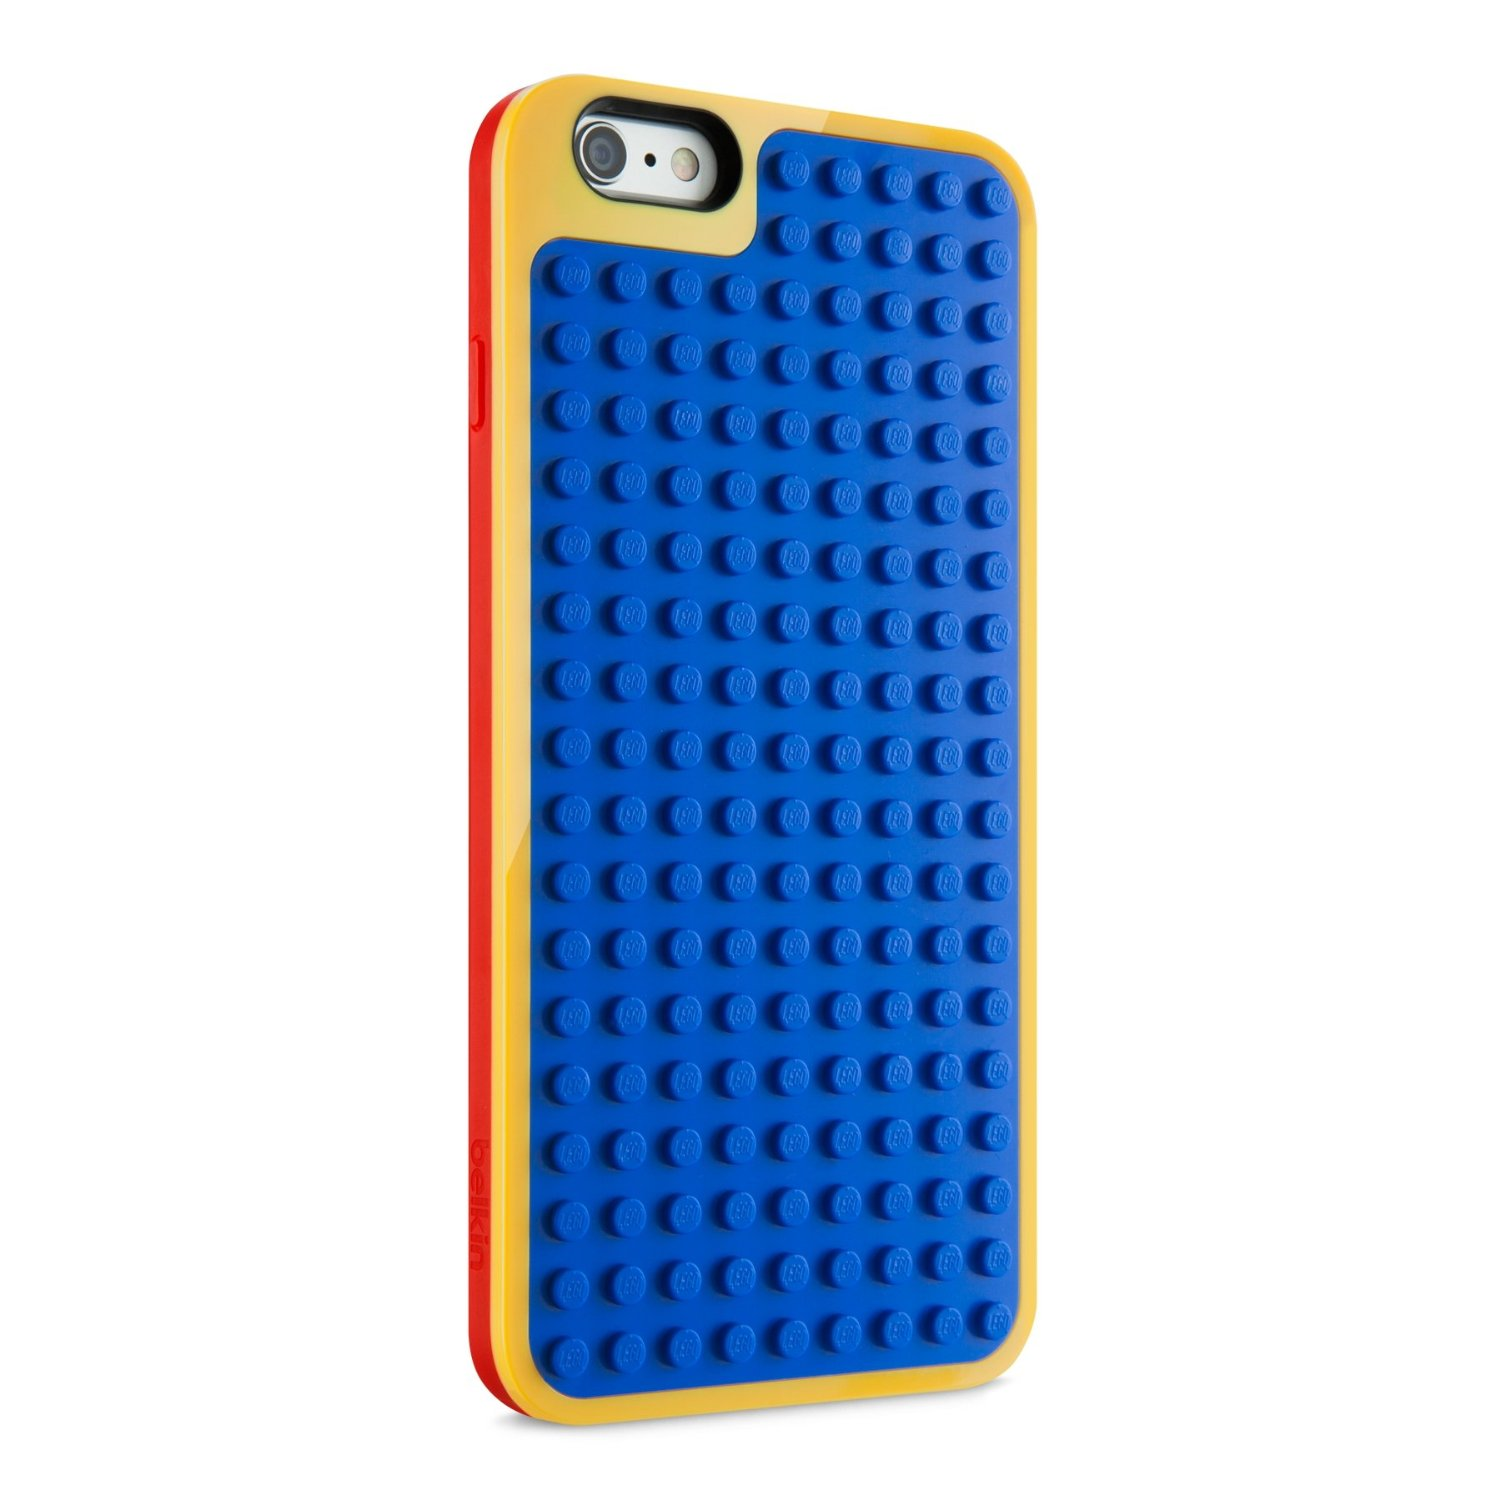 iphone 6 case for kids